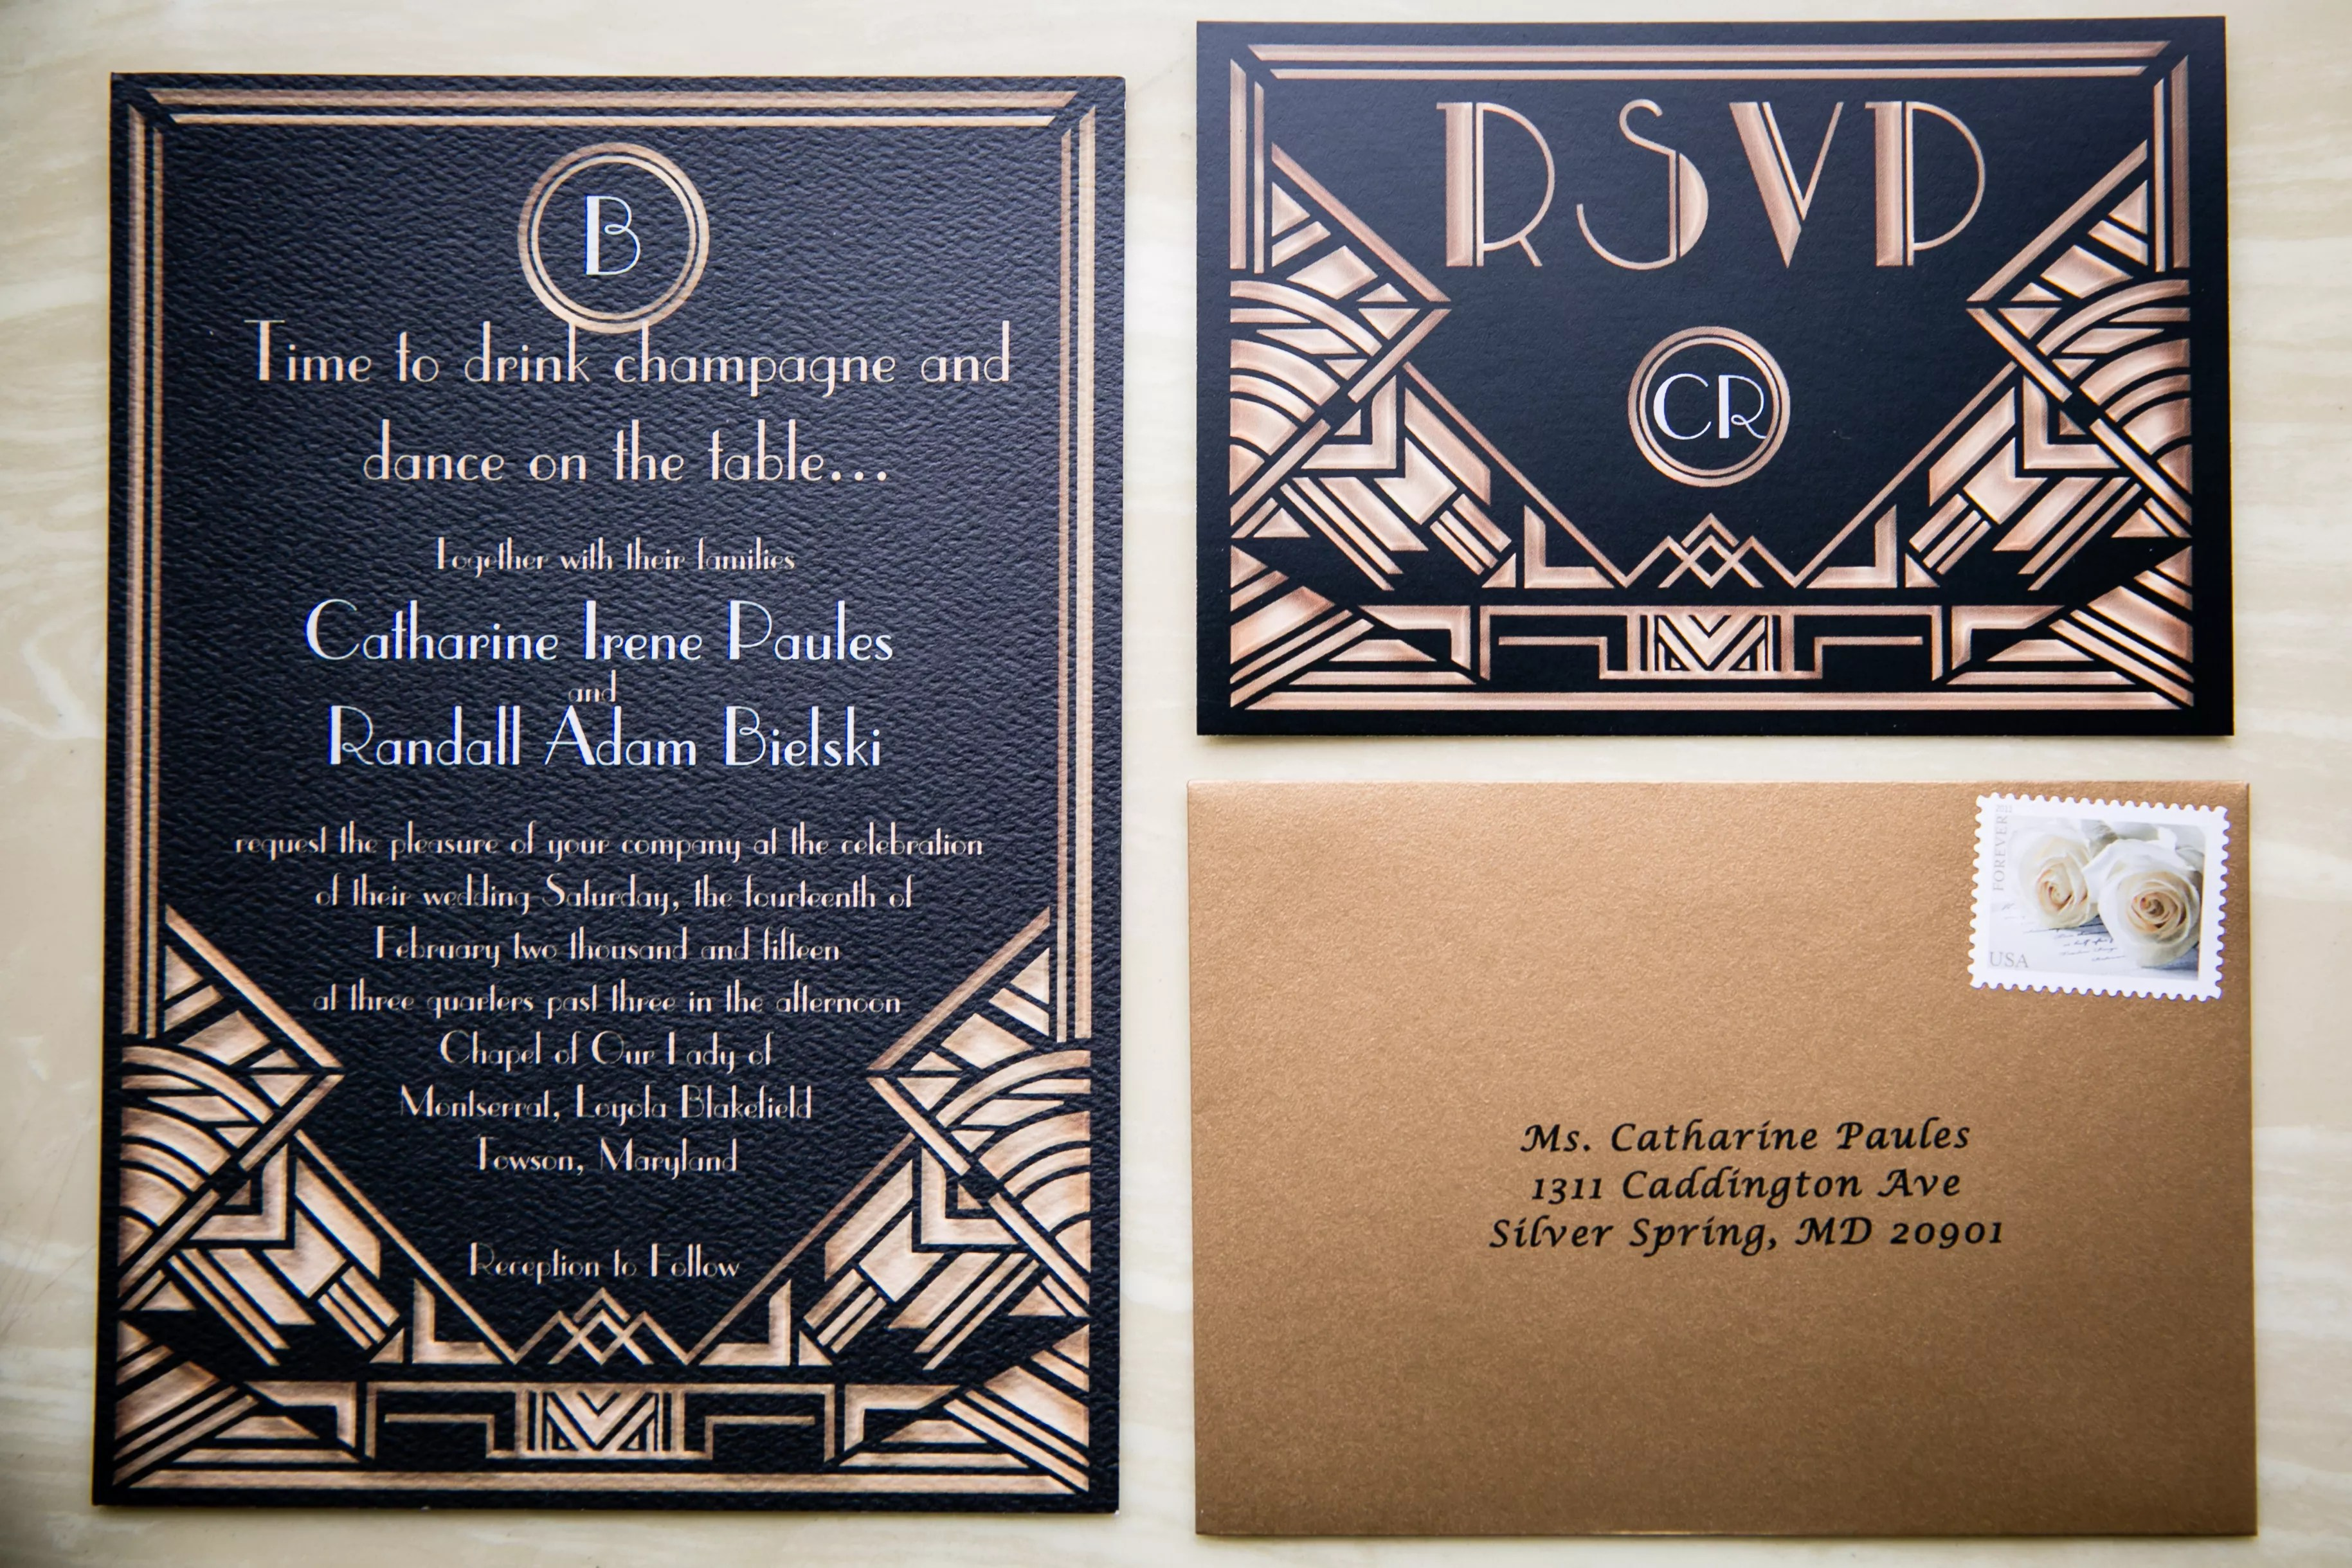 a great gatsby inspired wedding at the lord baltimore hotel in baltimore maryland album great gatsby wedding invitations C ddfd be0a e rs